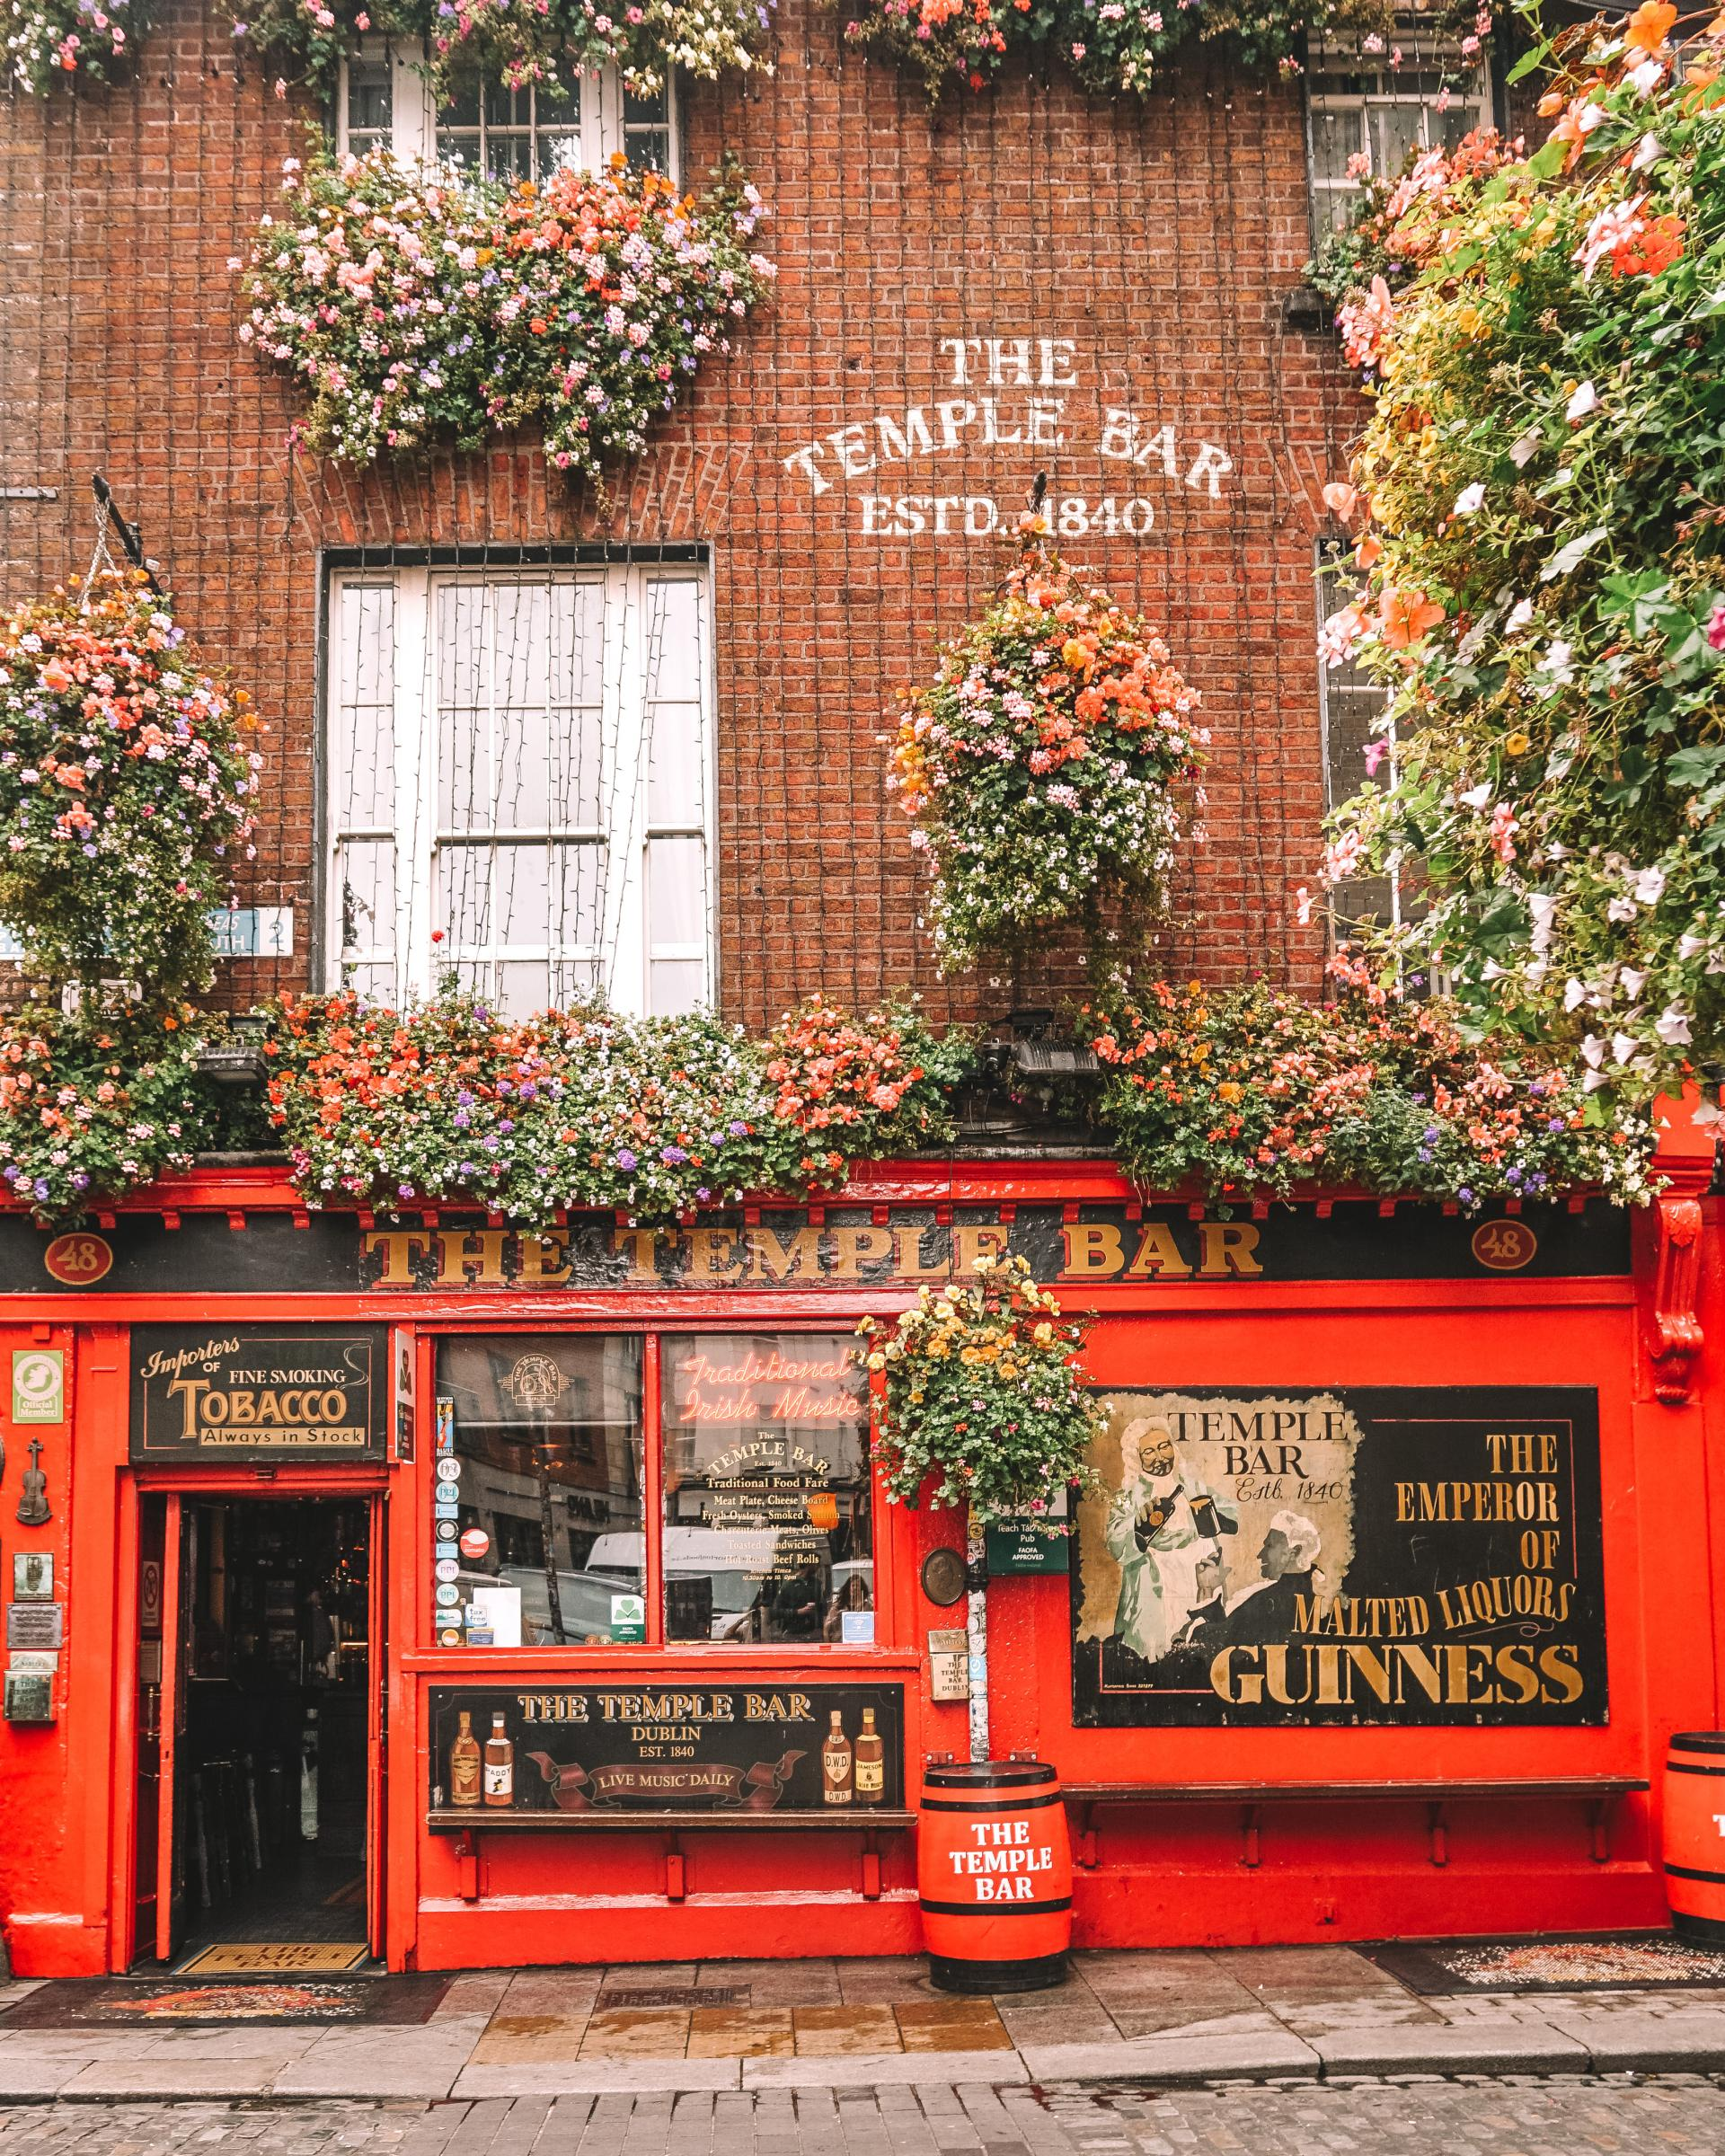 what is the best time of day to go to the temple bar